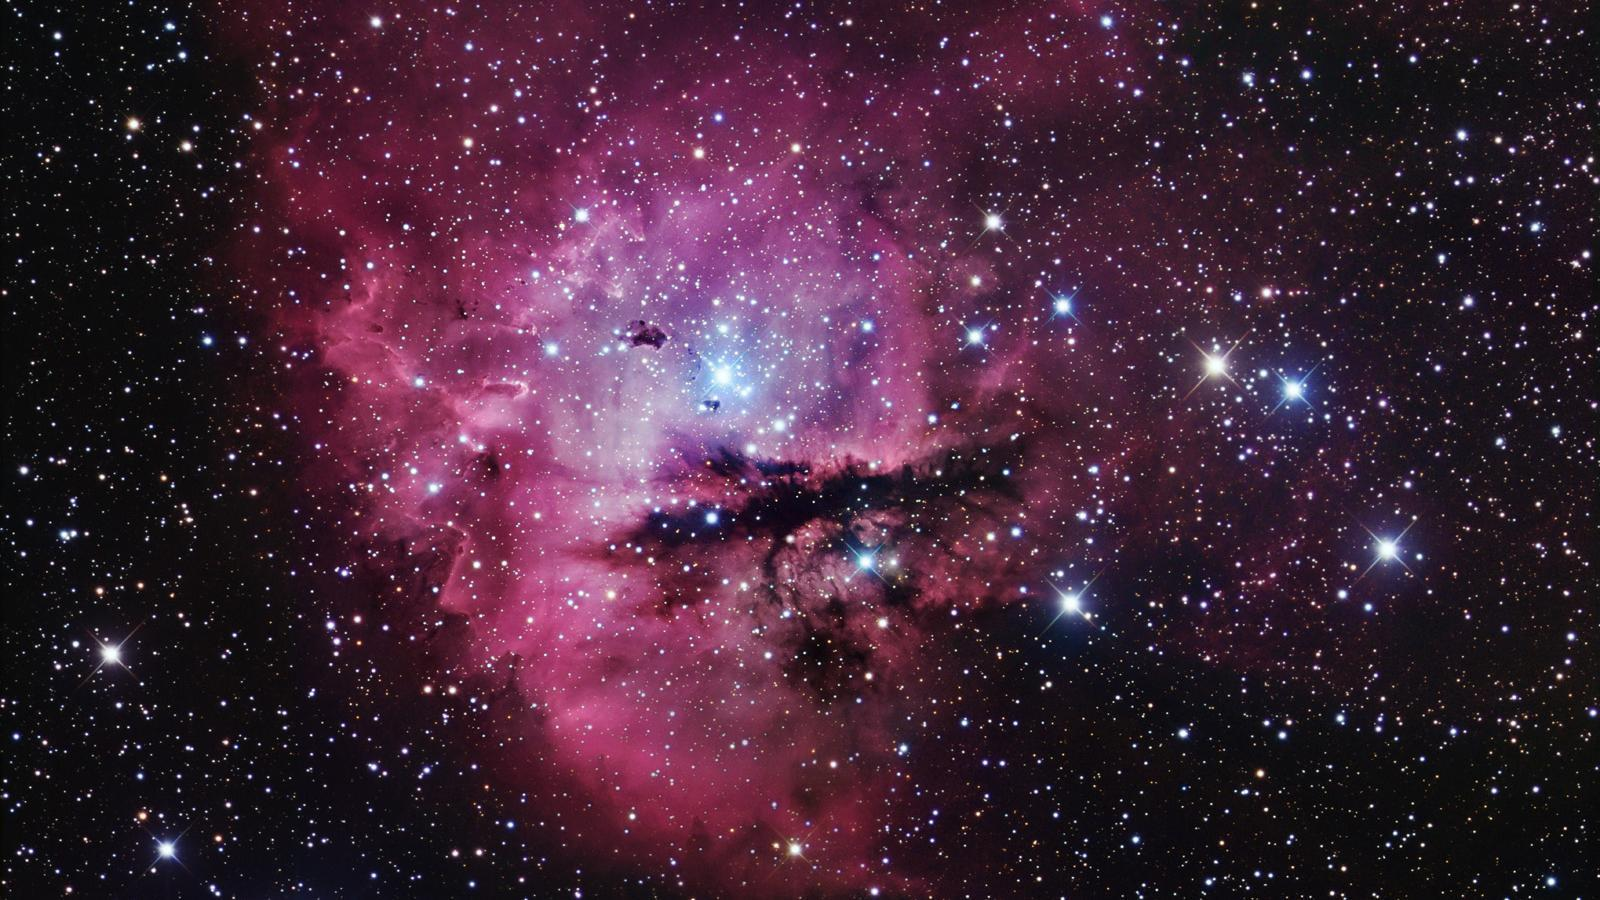 nebula hd wallpaper optical illusions - photo #2